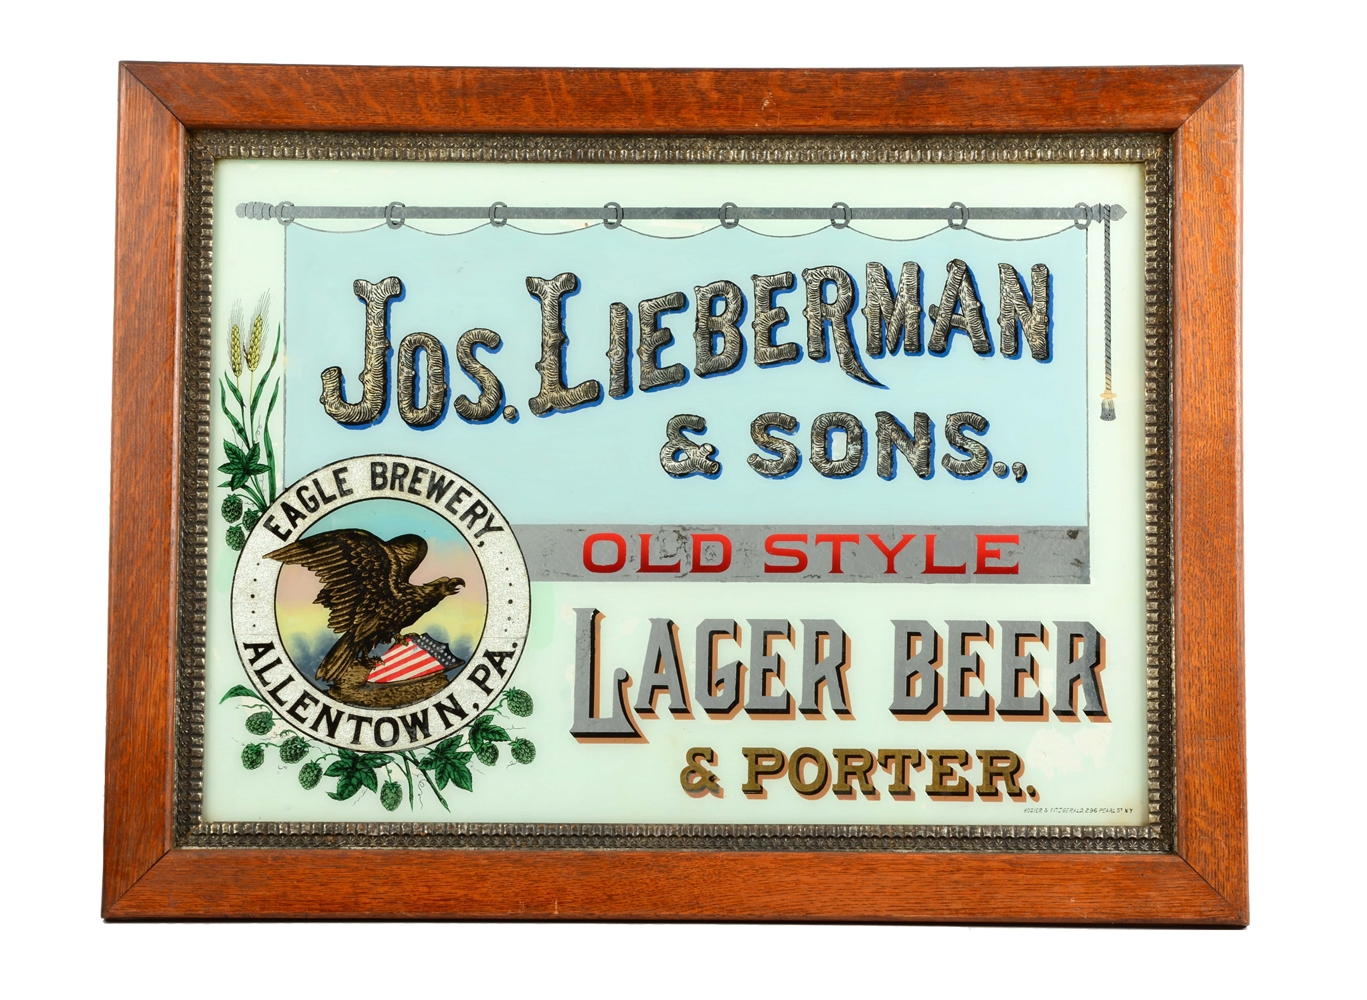 Joseph Lieberman Lager Beer Reverse Glass Sign.